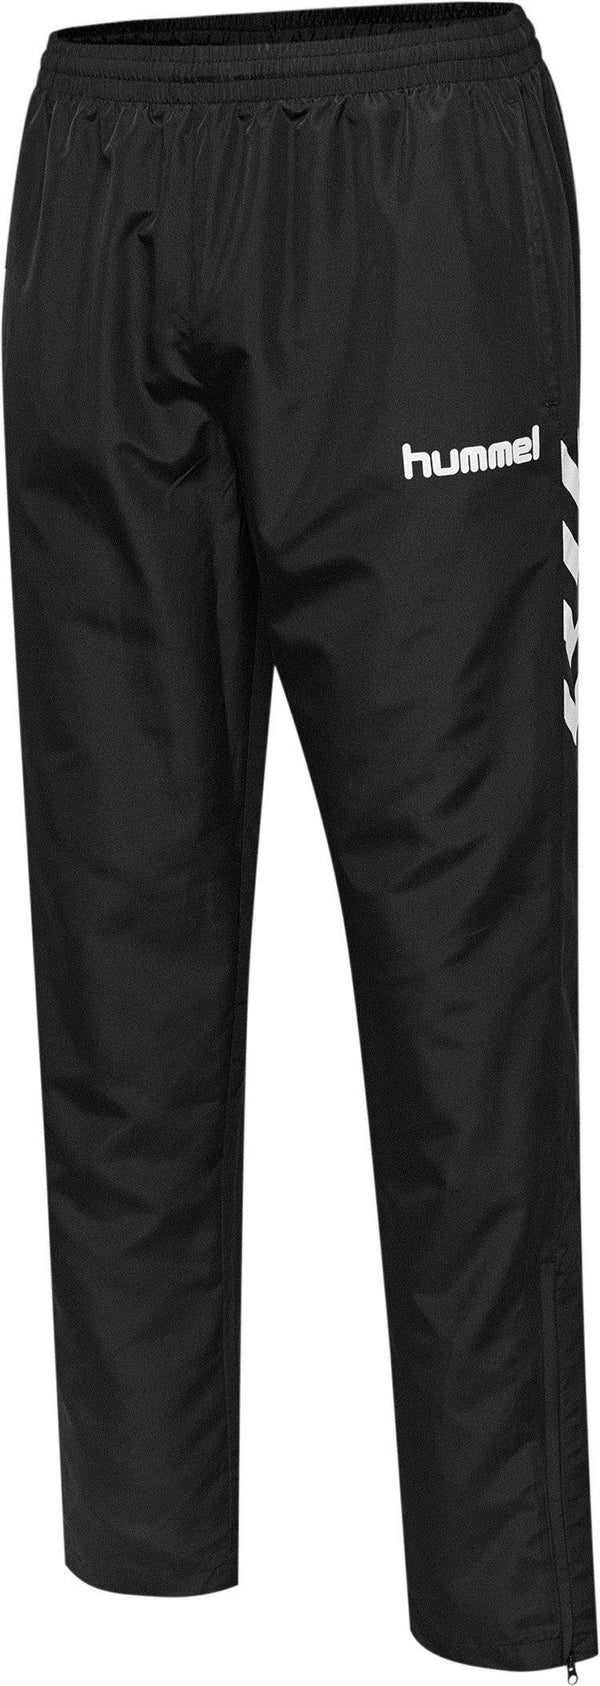 hummel Core Micro Warm Up Pants-Apparel-Soccer Source